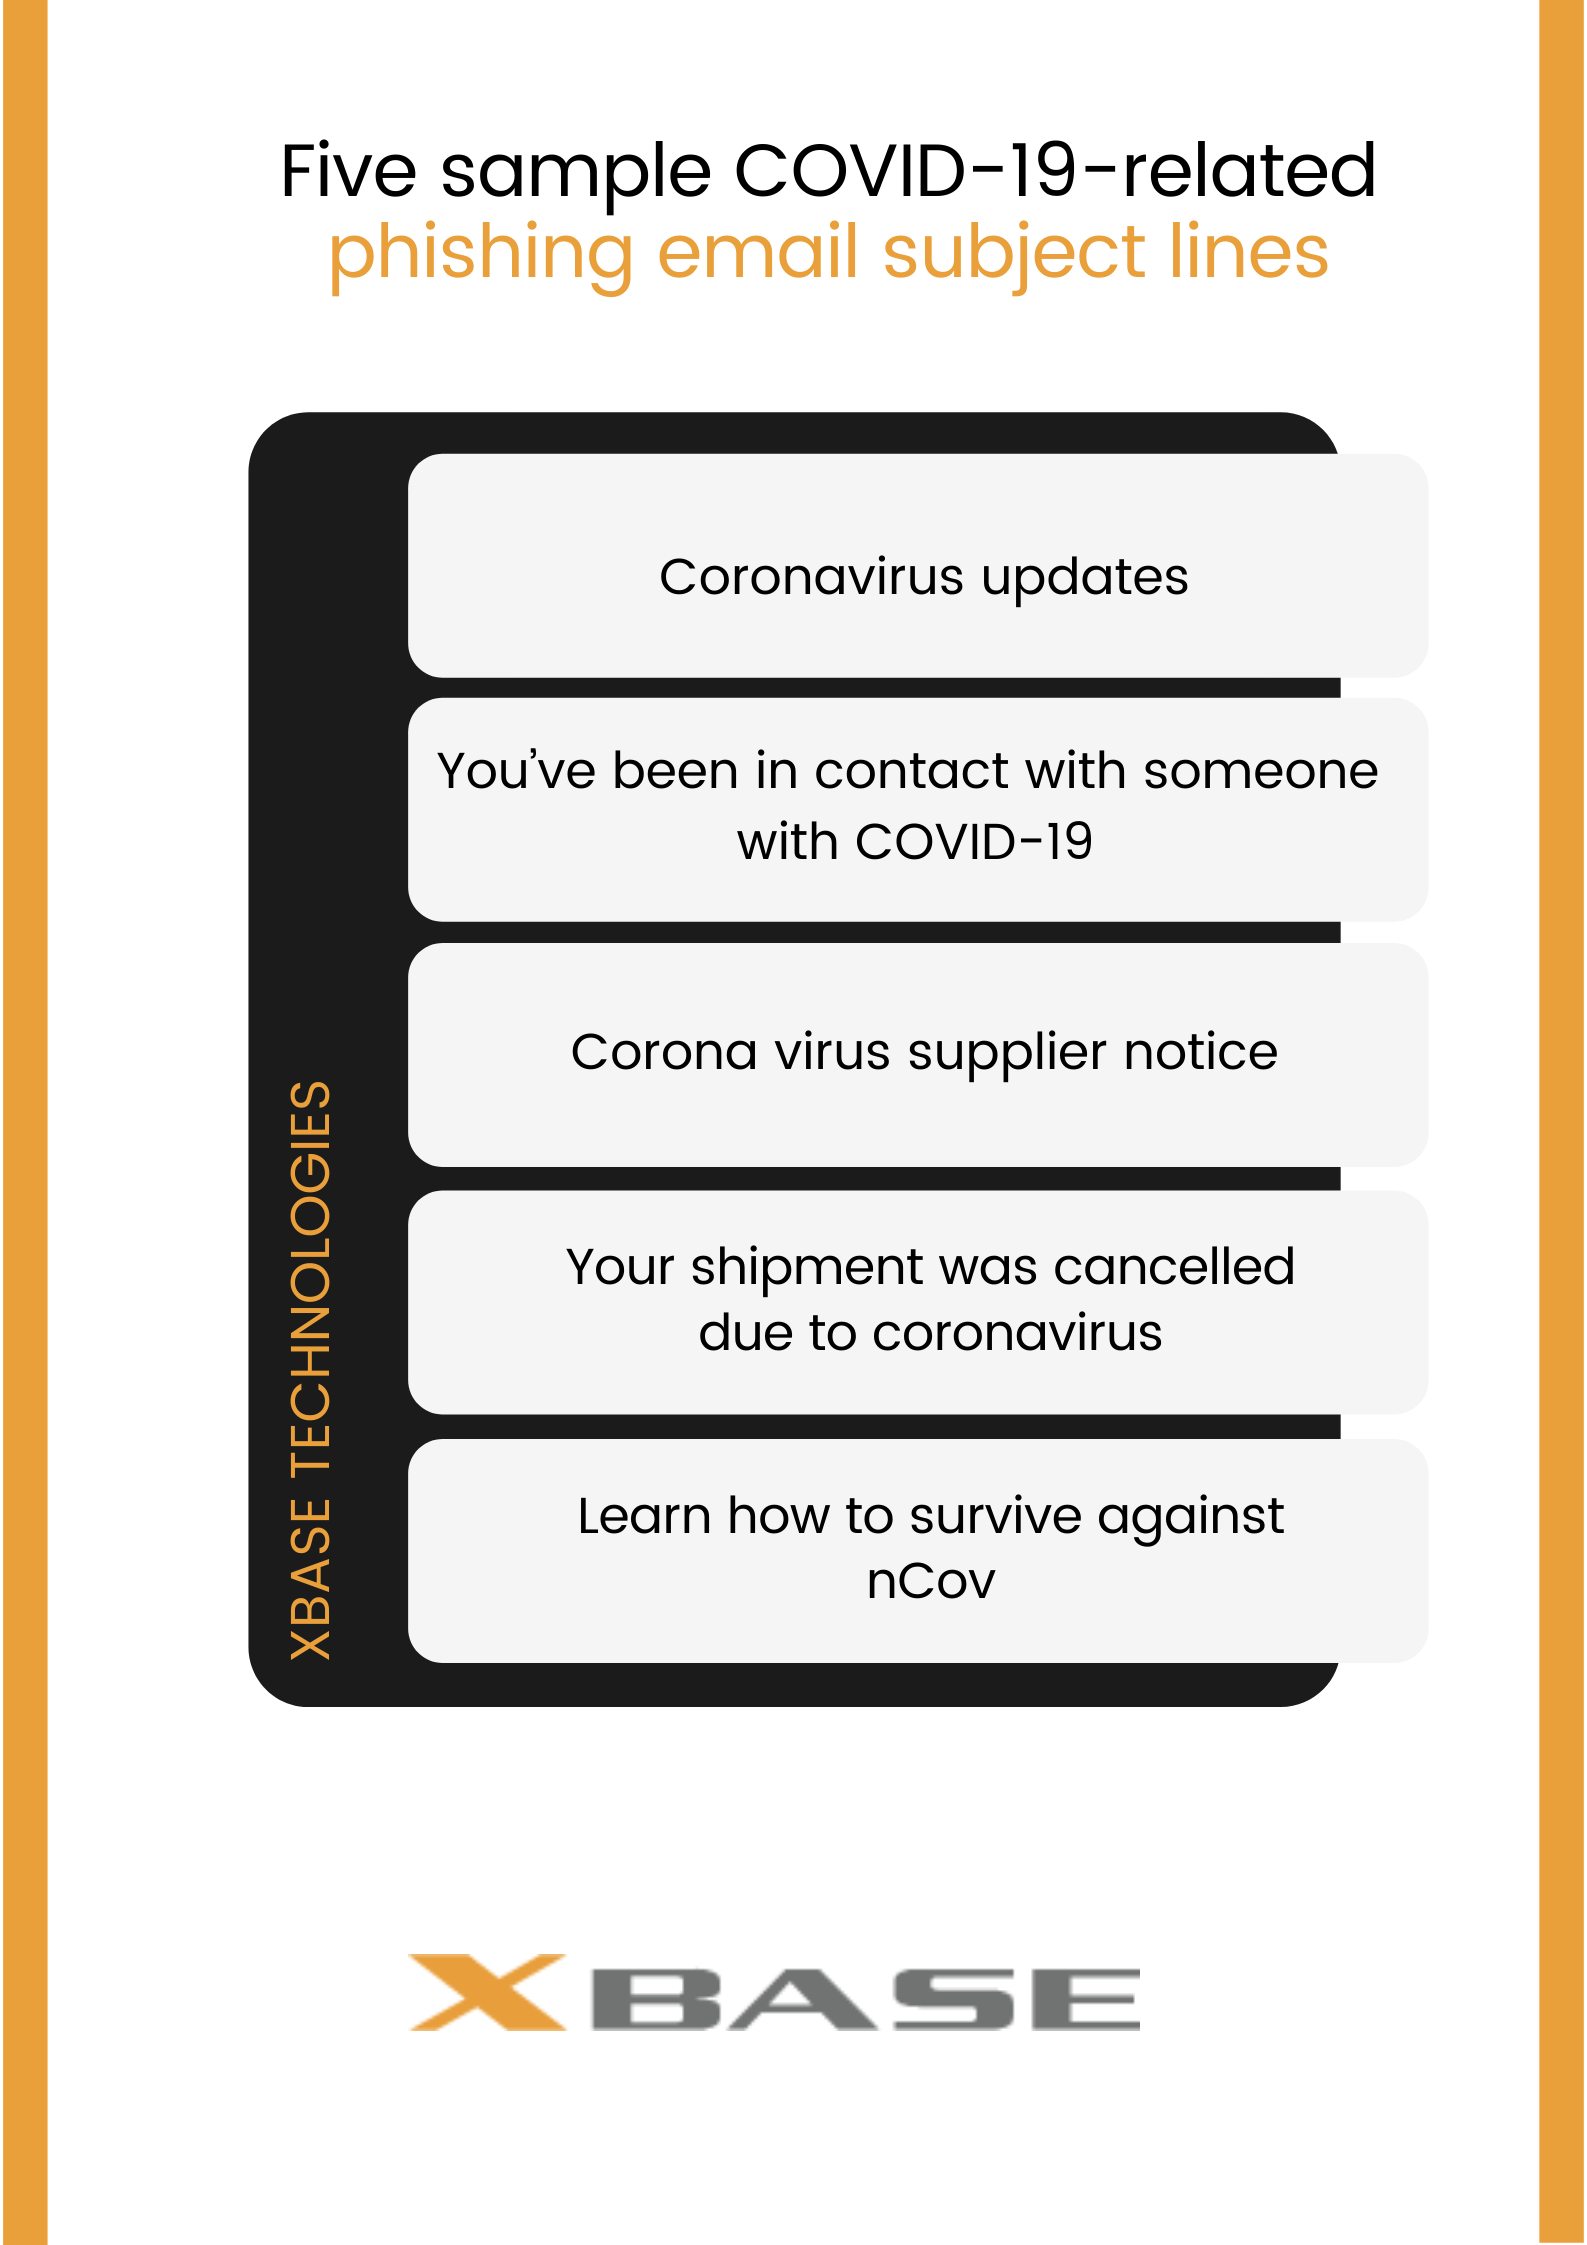 Five-sample-COVID-19-related-phishing-email-subject-lines-Infographic